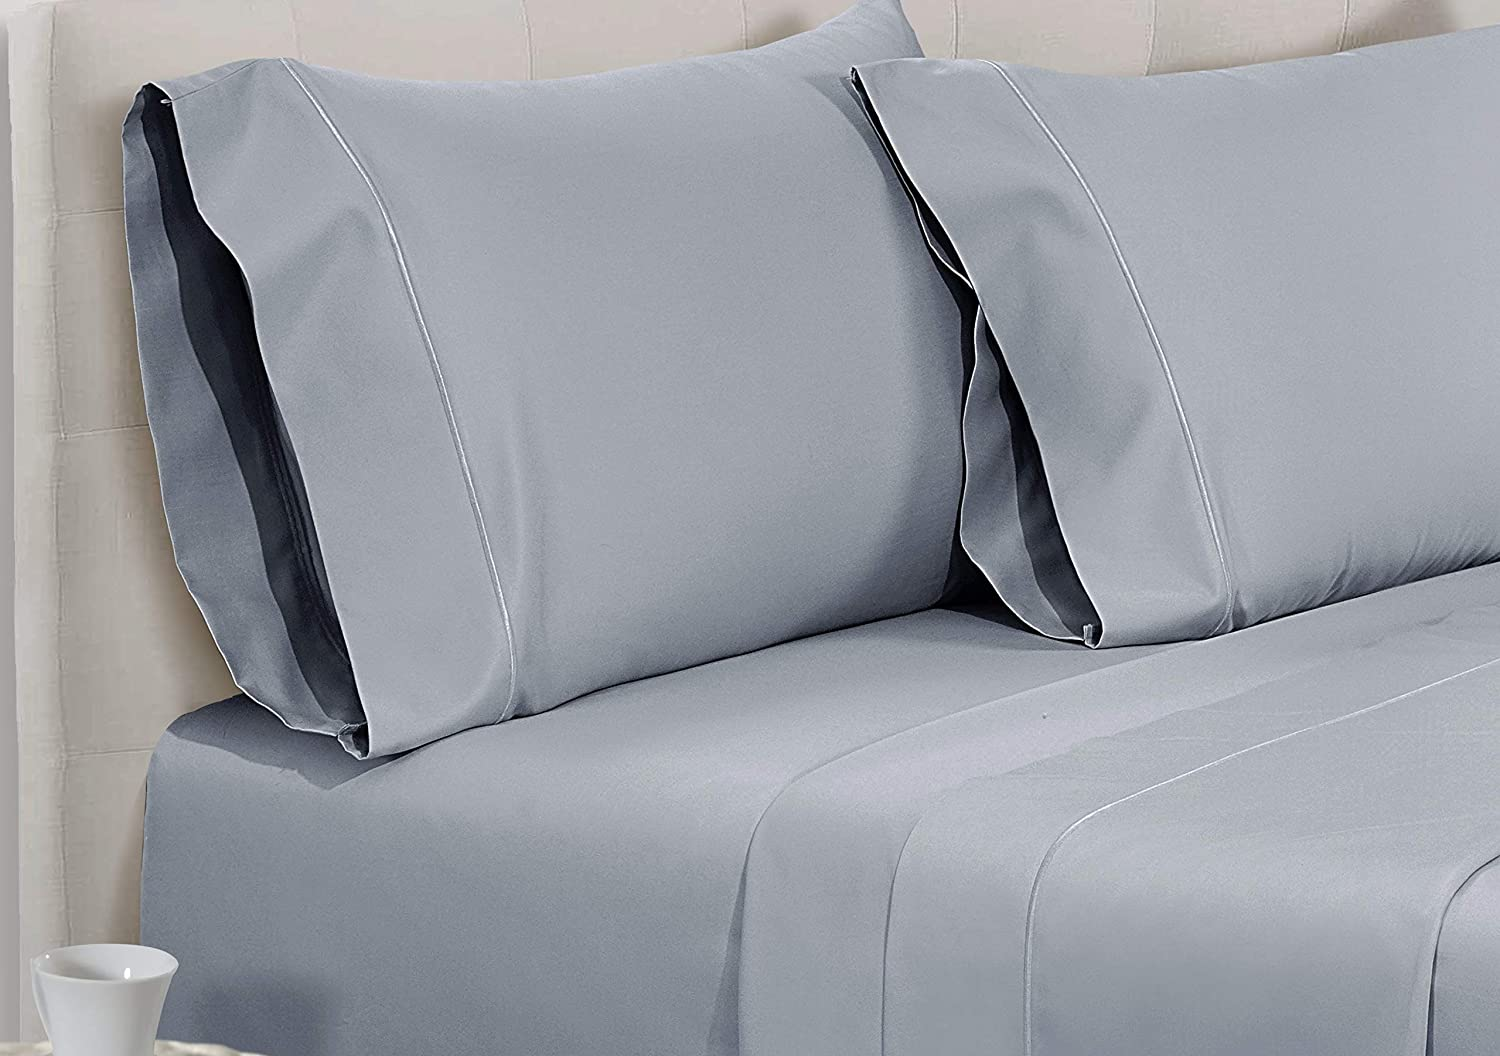 Full, Granite Grey CHATEAU HOME COLLECTION 800-Thread-Count Egyptian Cotton Deep Pocket Sateen Weave Sheet Set Ultimate Gift; Holiday Sale